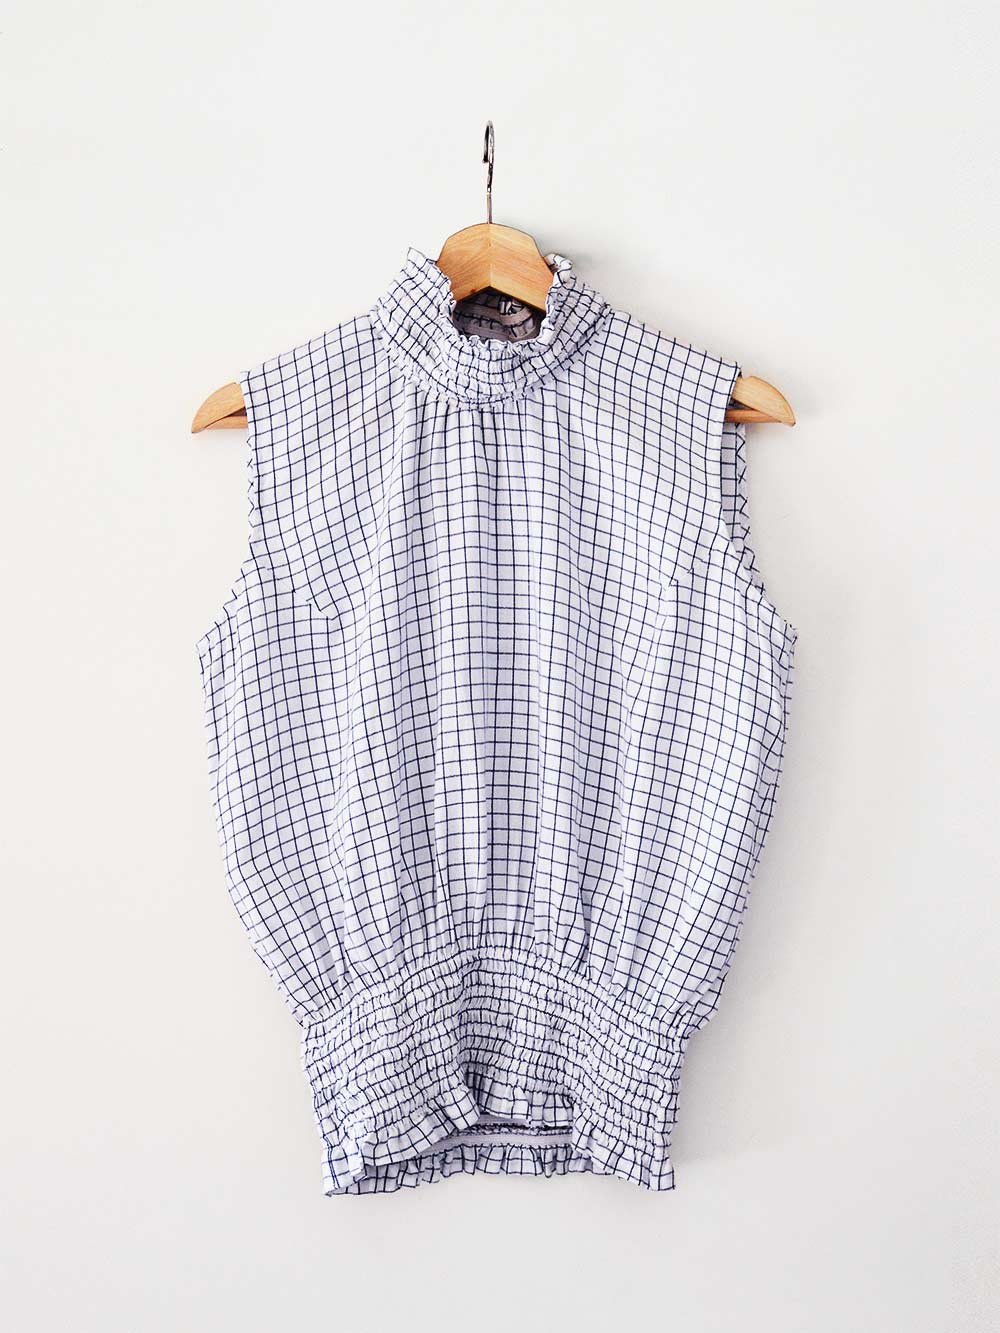 white an blue checked Sleeveless top with gathered collar and waist, designed by Khumanthem Atelier